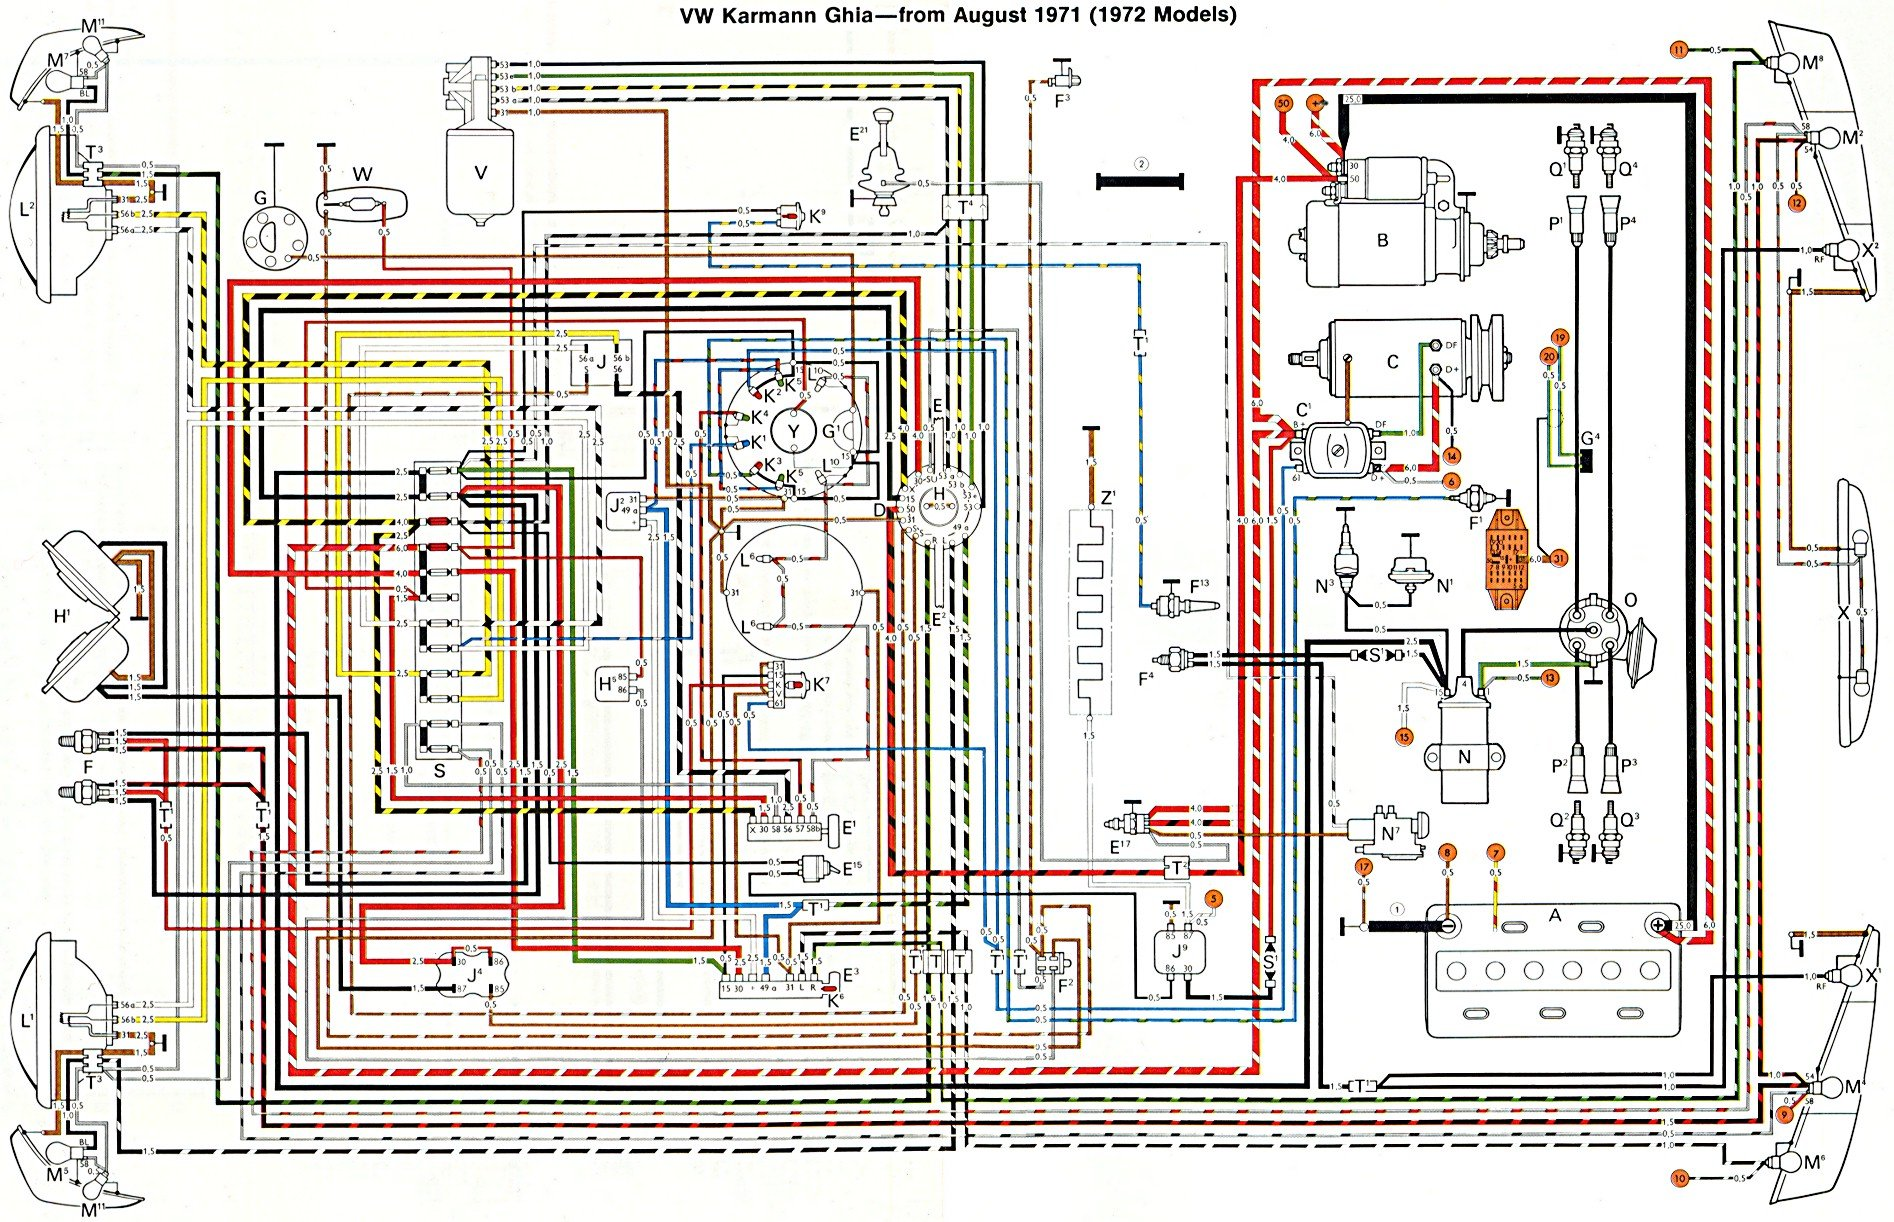 72ghia thesamba com karmann ghia wiring diagrams 1972 beetle wiring diagram at letsshop.co